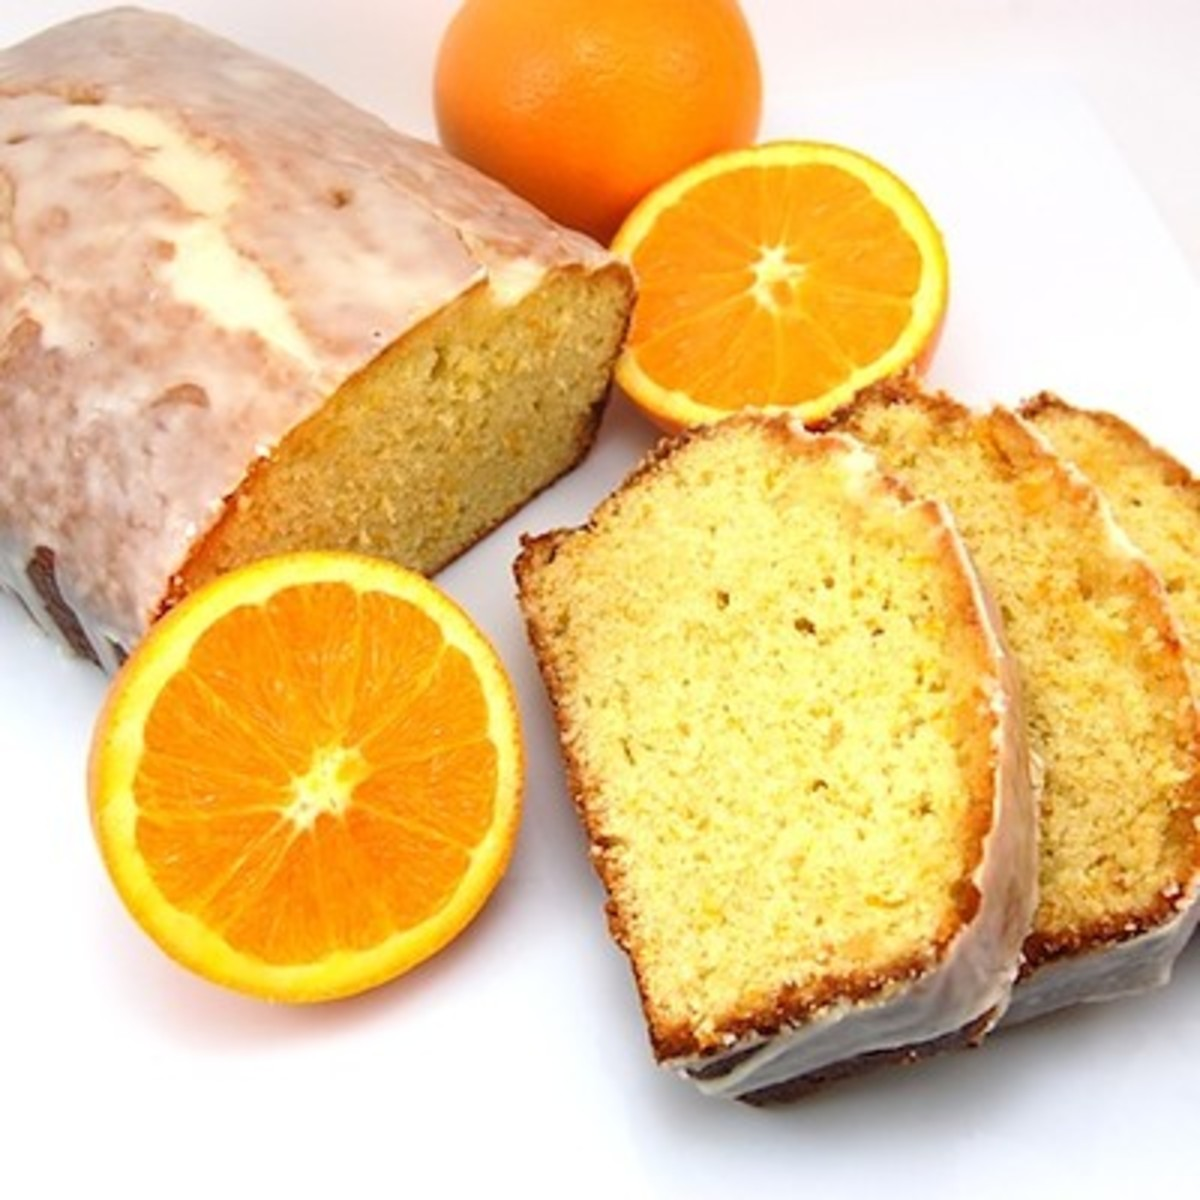 If you take the time to make an Orange Crush Pound Cake you will be rewarded with the most delicious pound cake you will ever eat. I like this pound cake better than any other pound cake I have ever tasted in my life. It is so very delicious.